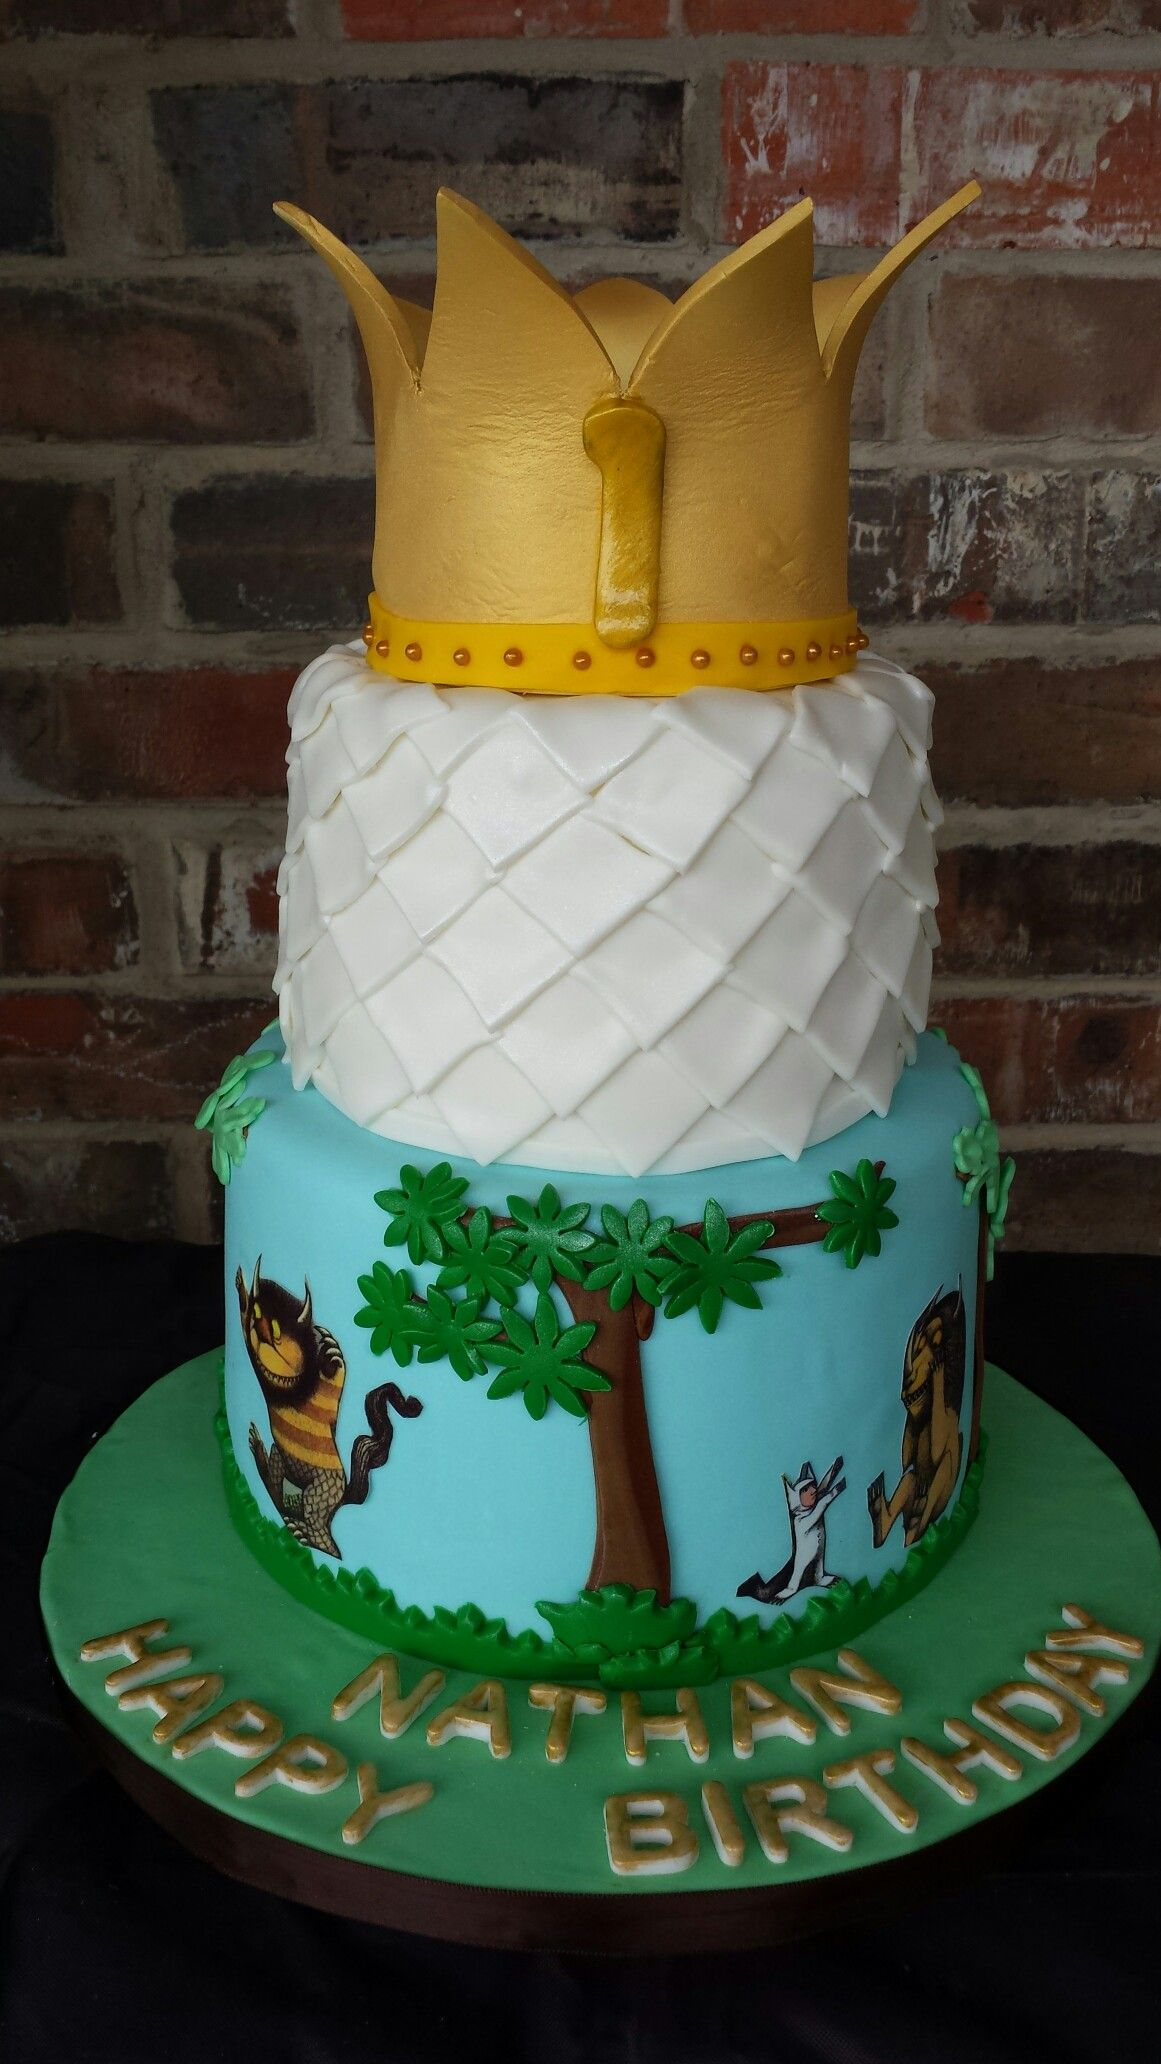 Where The Wild Things Are 1st Birthday Cake By Max Amor